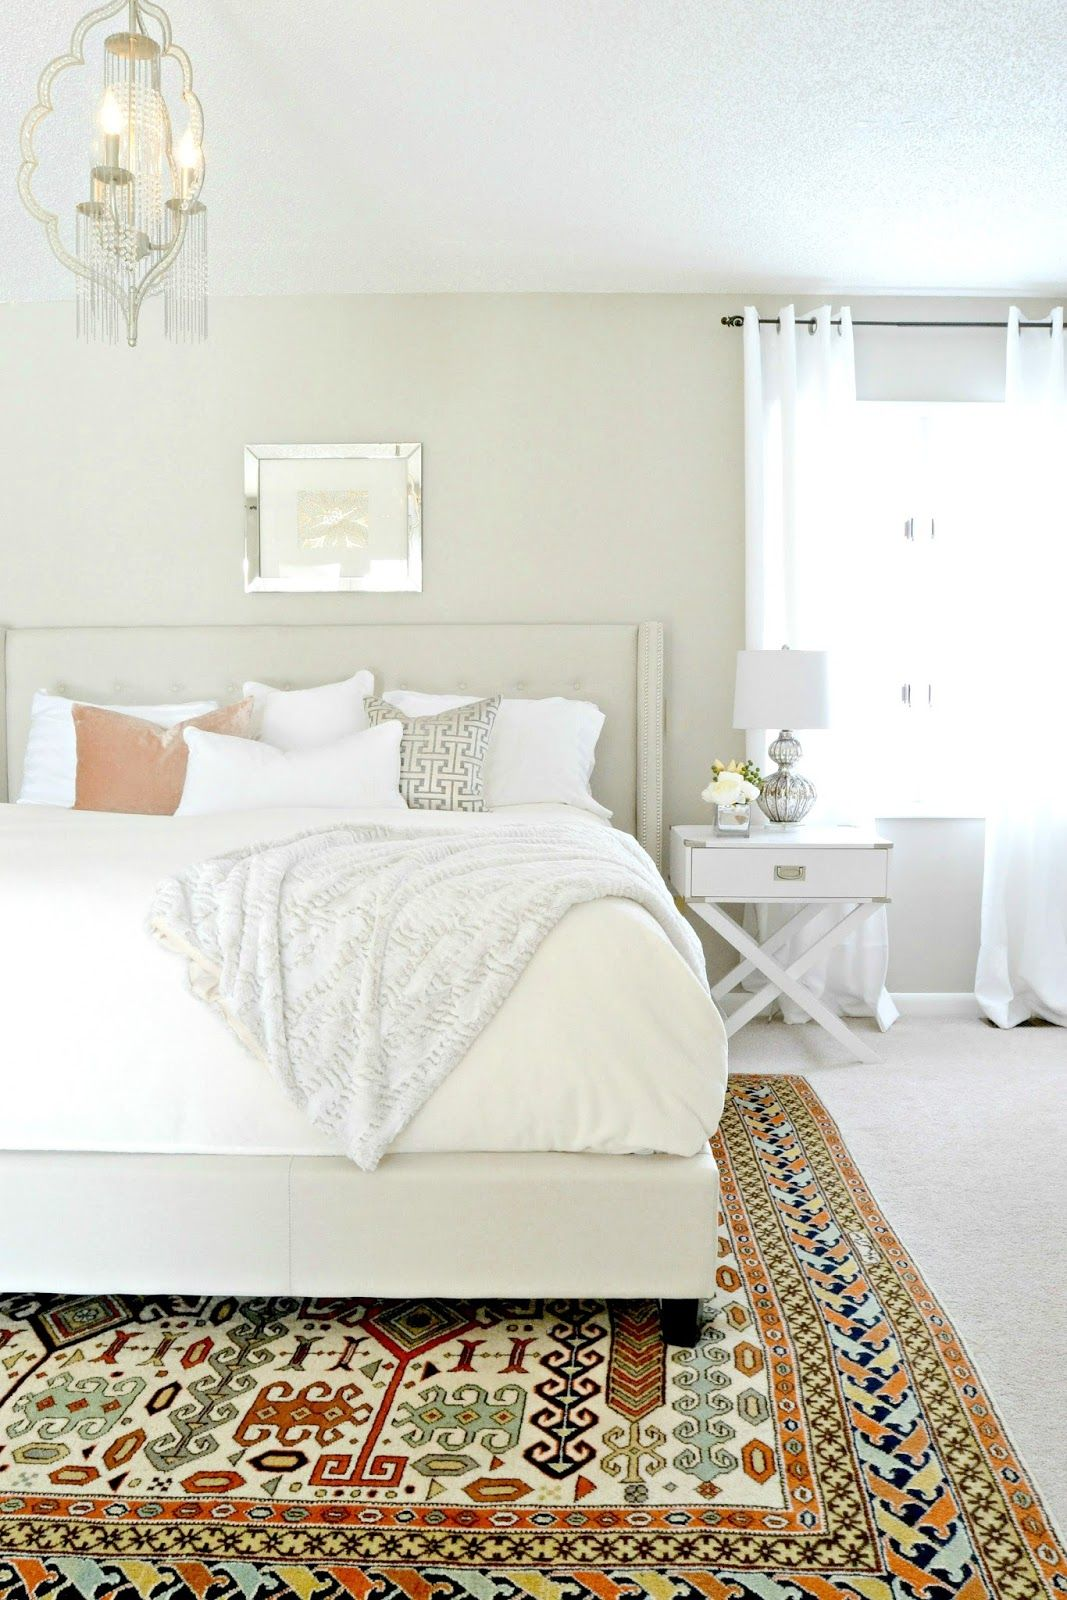 How To Decorate A Bedroom With A Mixture Of Repurposed